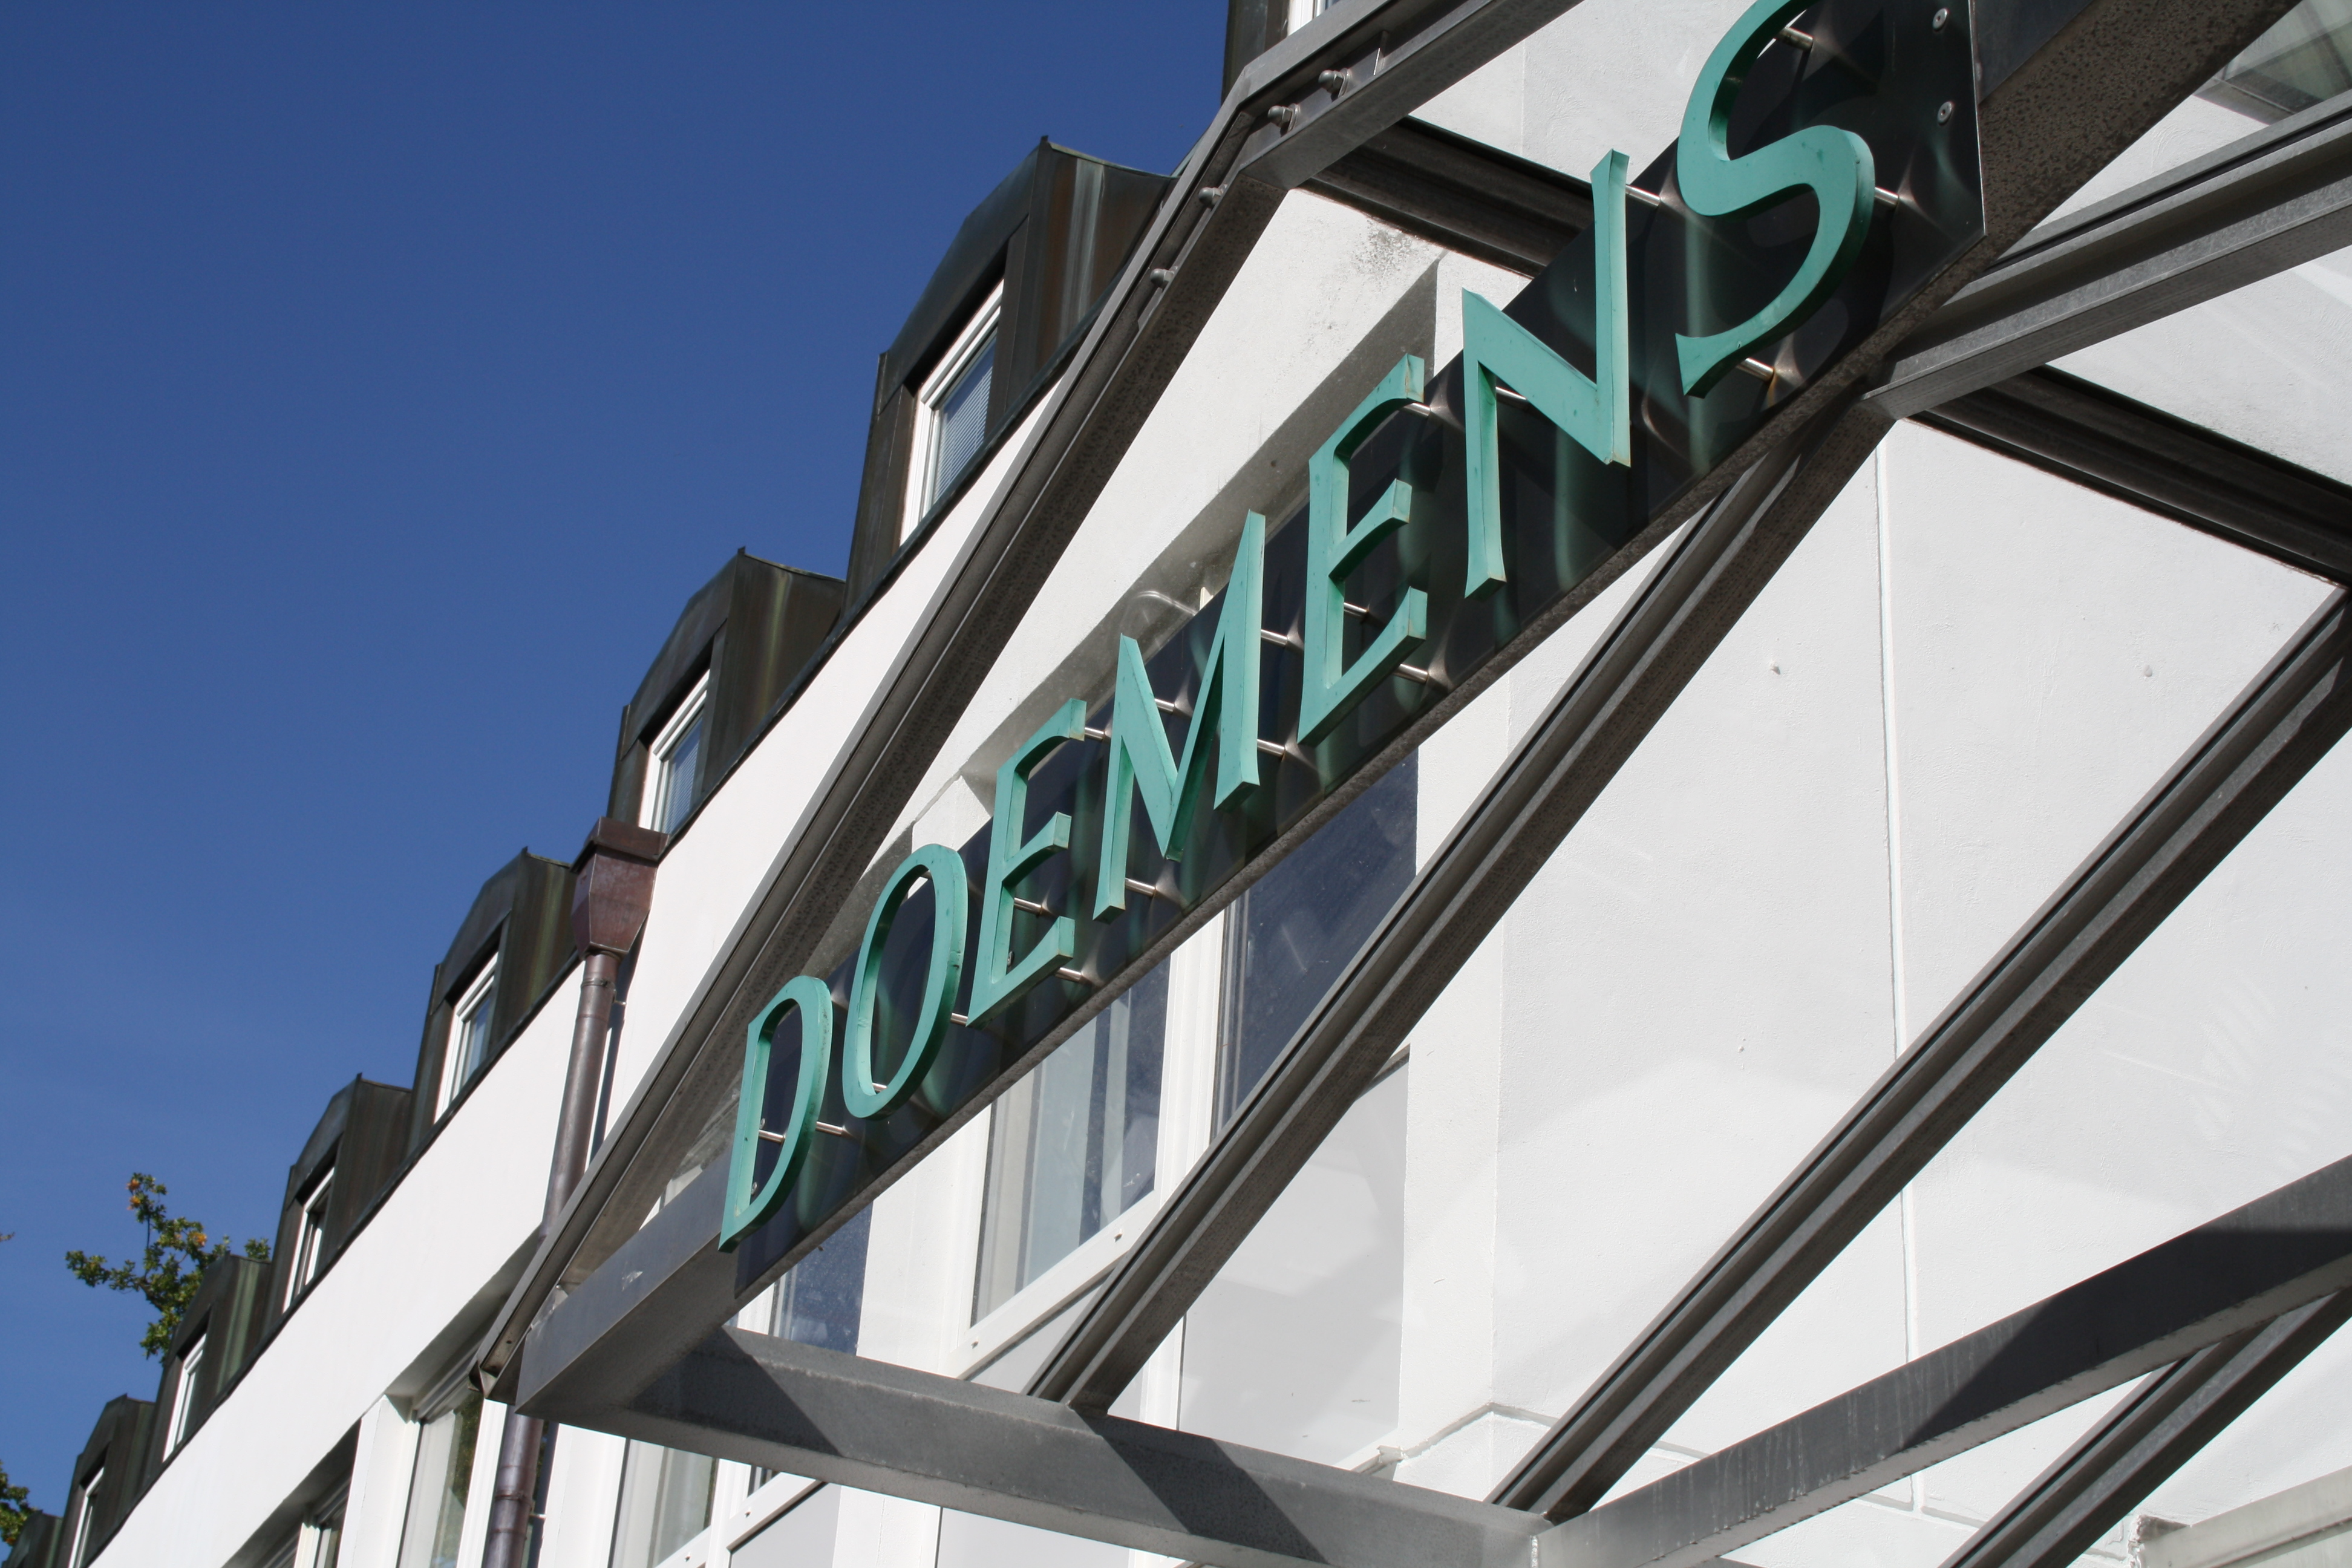 Doemens stands for tradition, progress and proximity